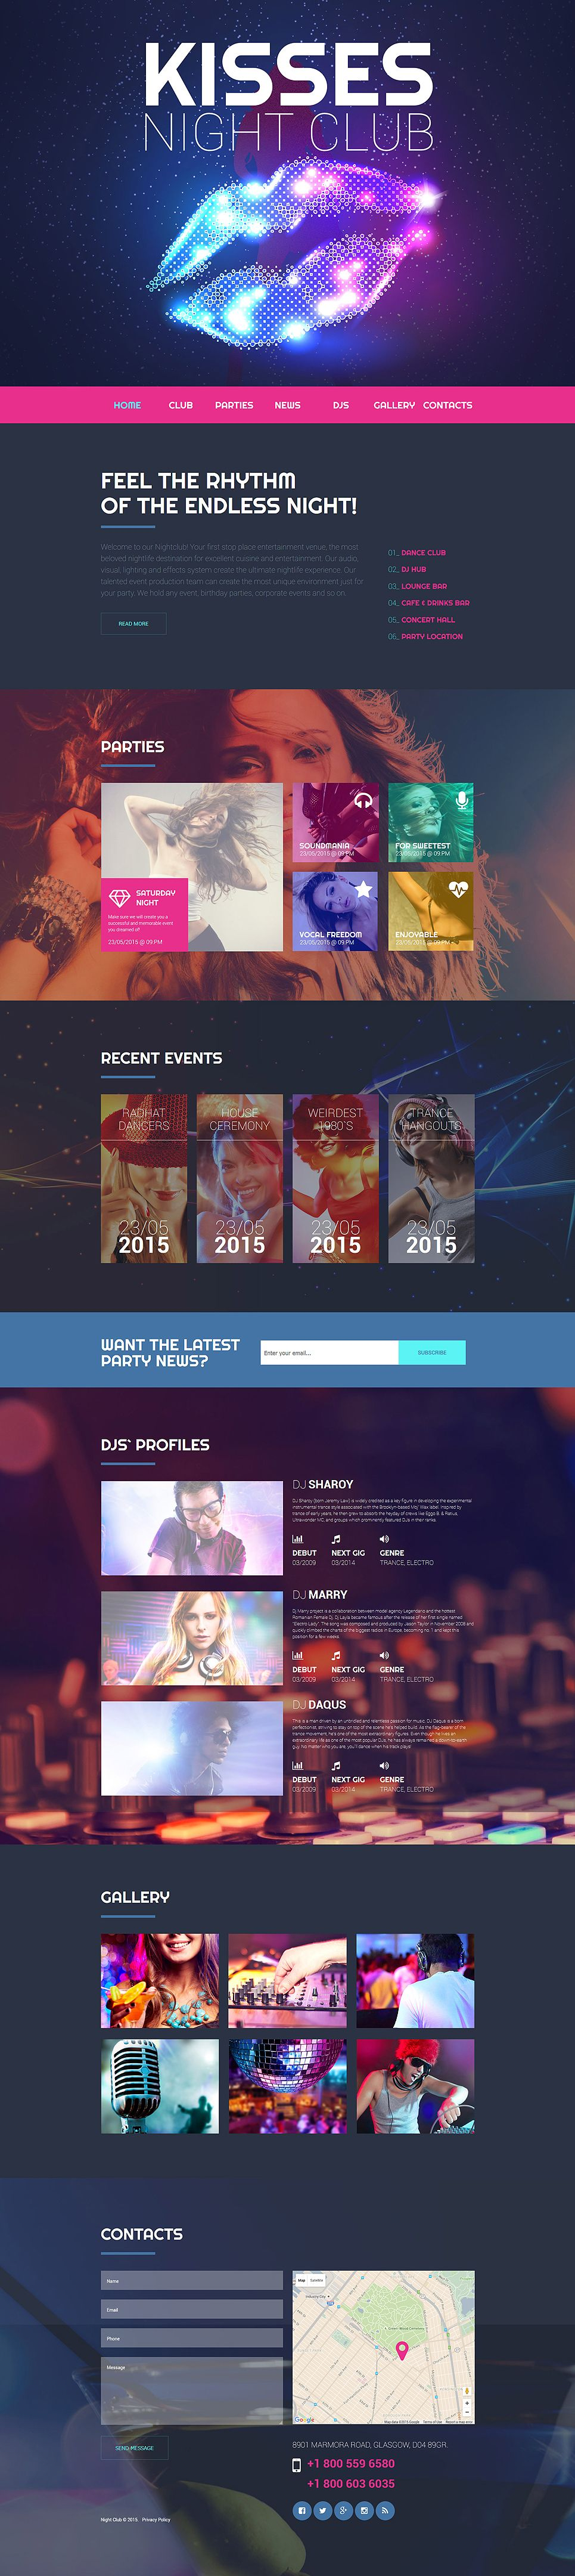 Night Club Website Template from i.pinimg.com